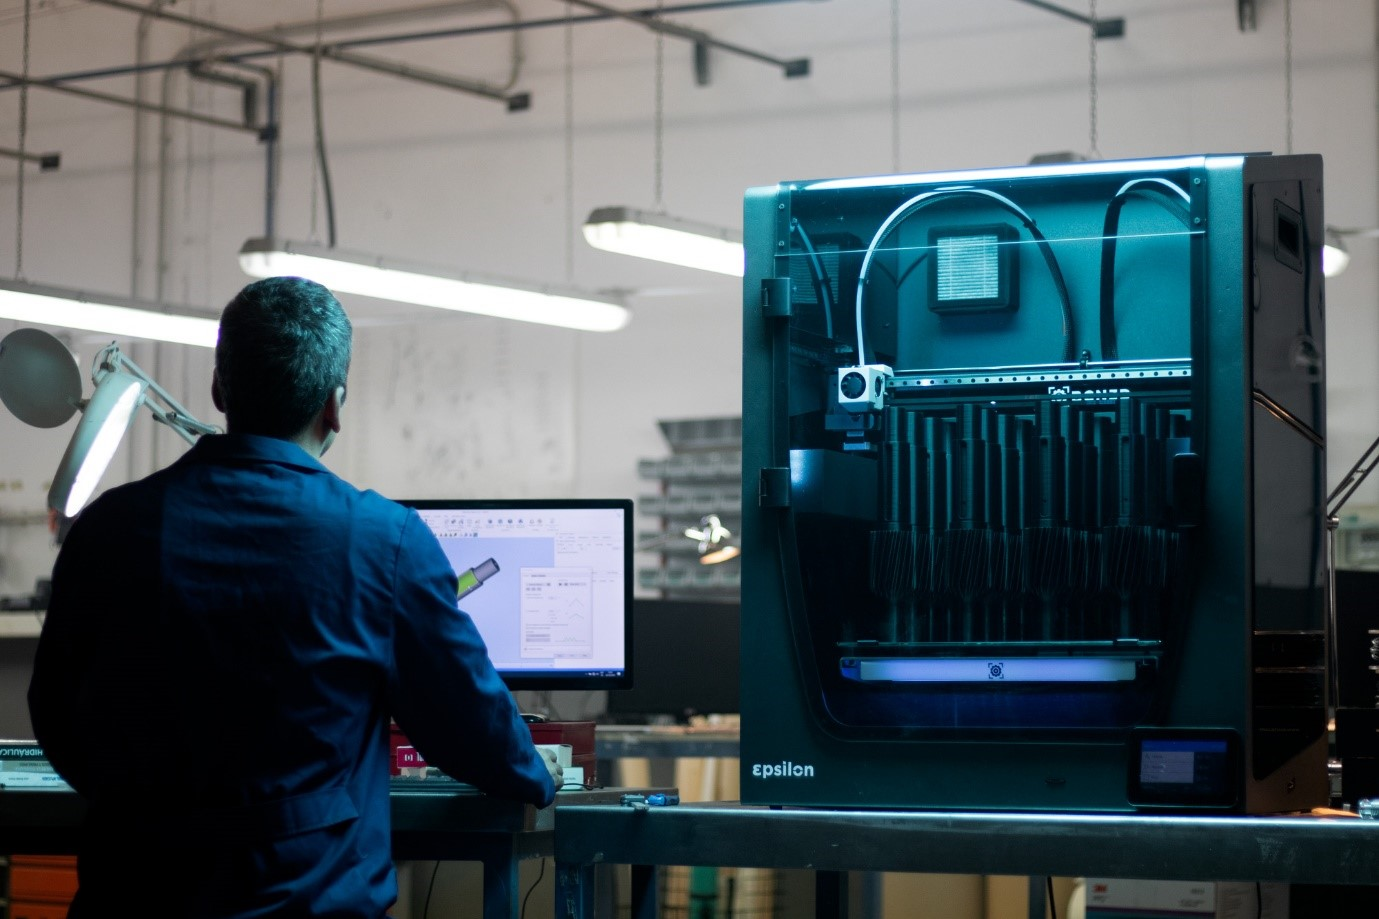 3D Printing Trade Information Sliced: Stratasys, GE Additive, ExOne, BCN3D, Makerbot, HP and extra 3